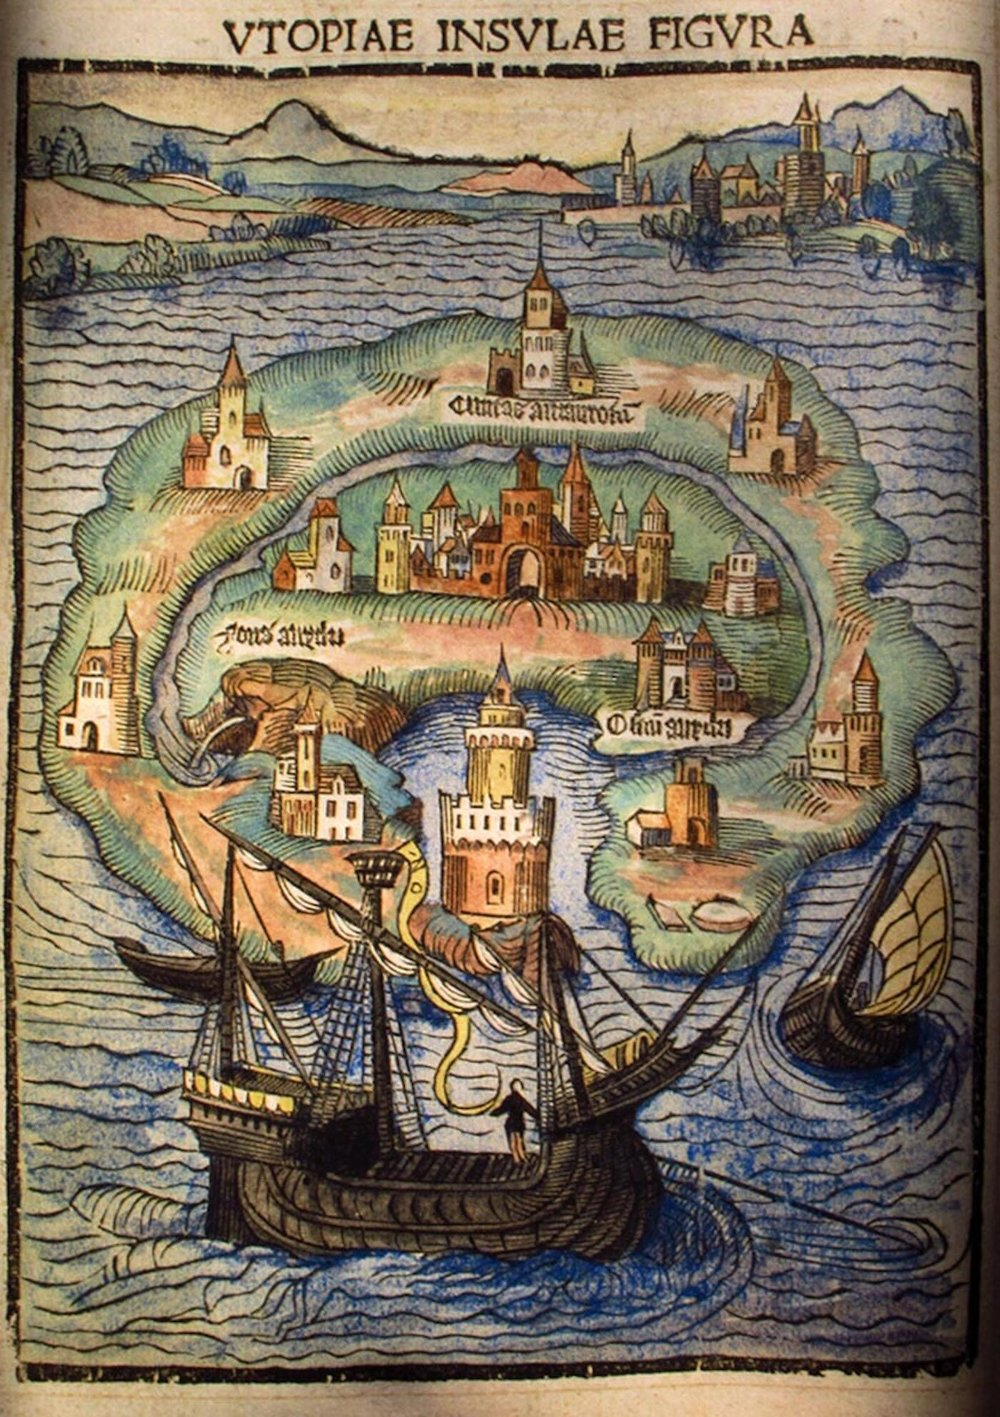 Copertina interna de l' Utopia  di Thomas More, 1516